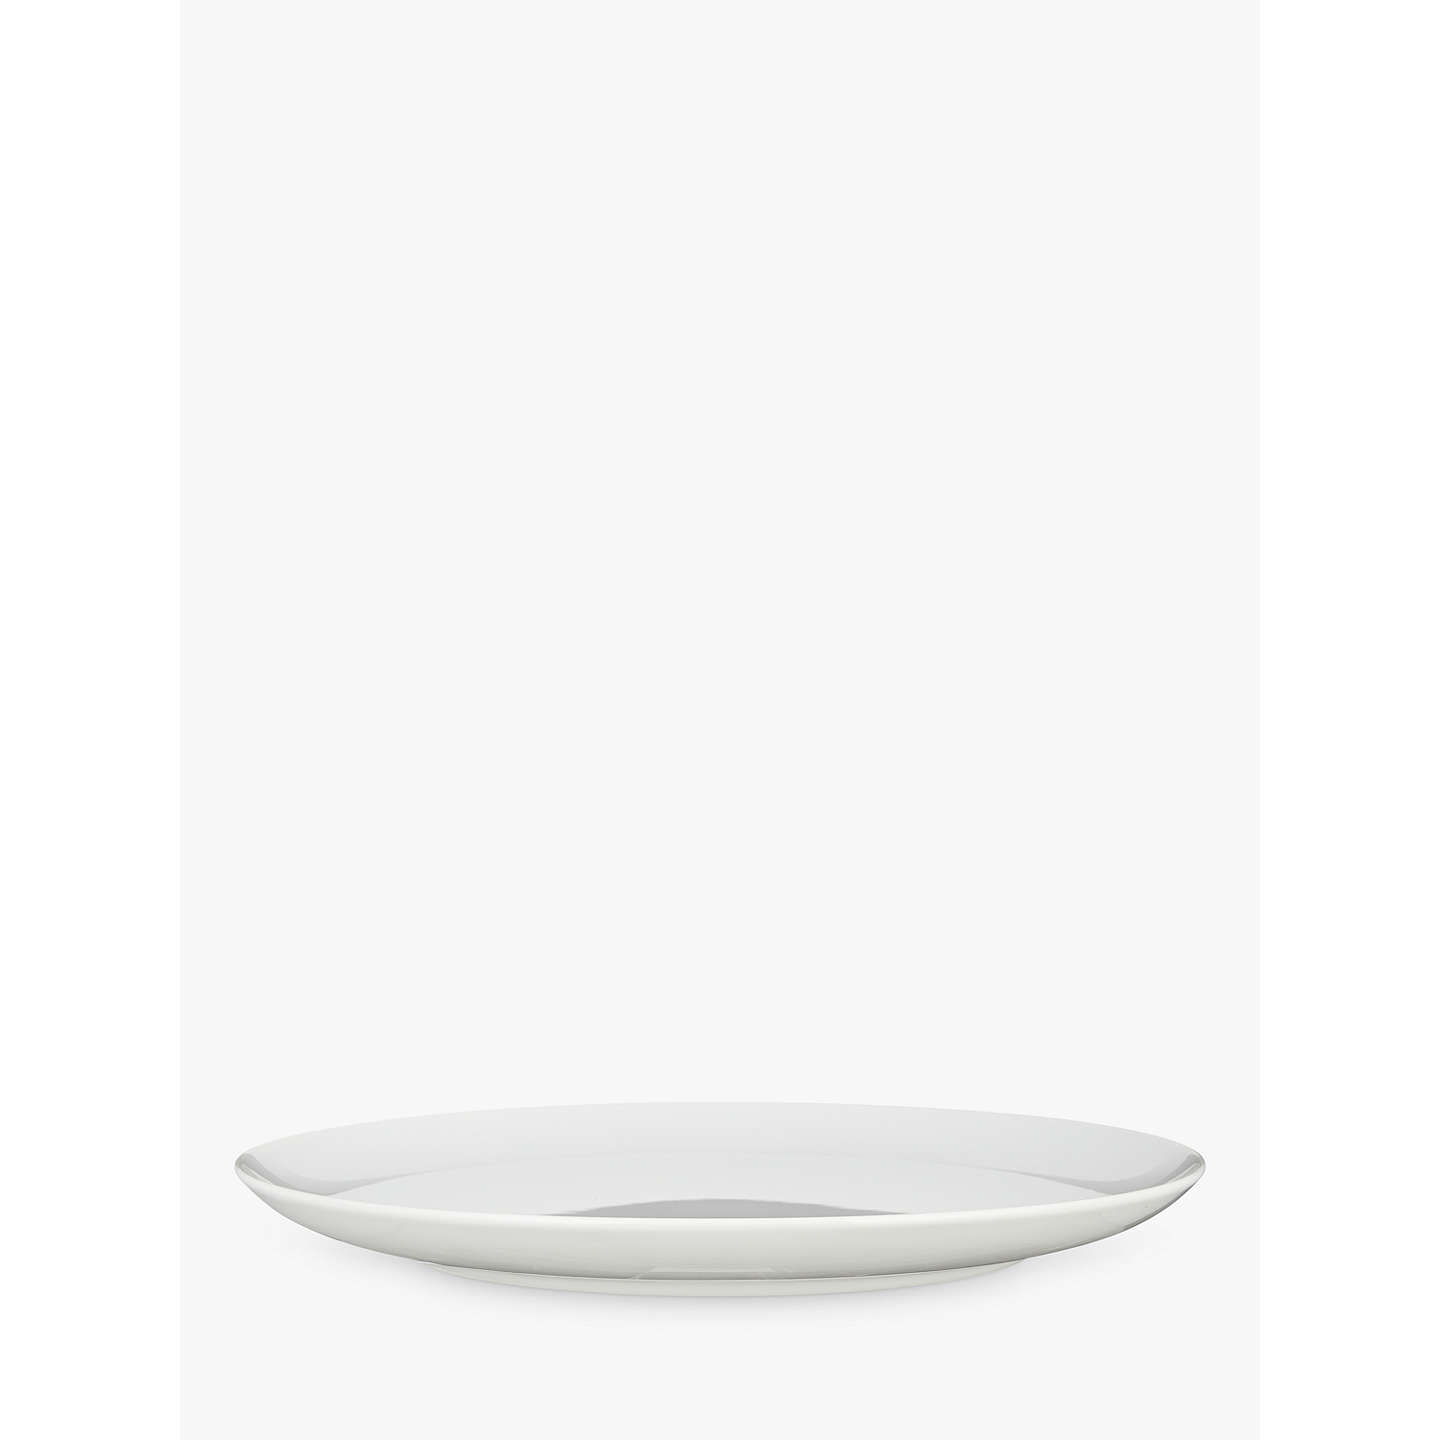 BuyHouse by John Lewis Eat 28cm Coupe Dinner Plate, White Online at johnlewis.com